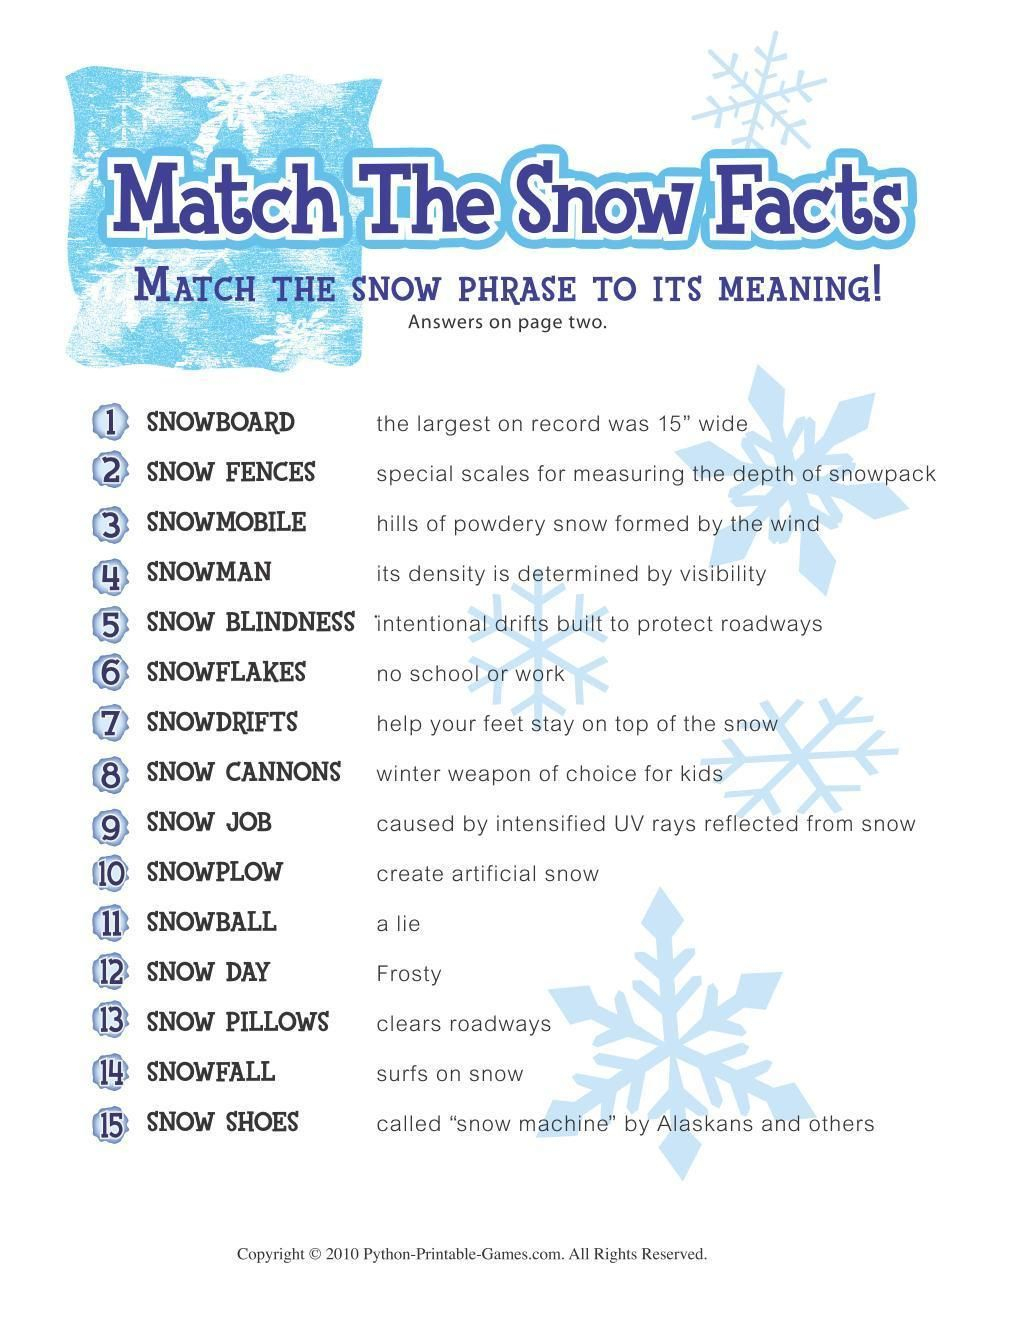 Free Printable Winter Game Match The Snow Facts Download | Fun Party - Free Holiday Games Printable